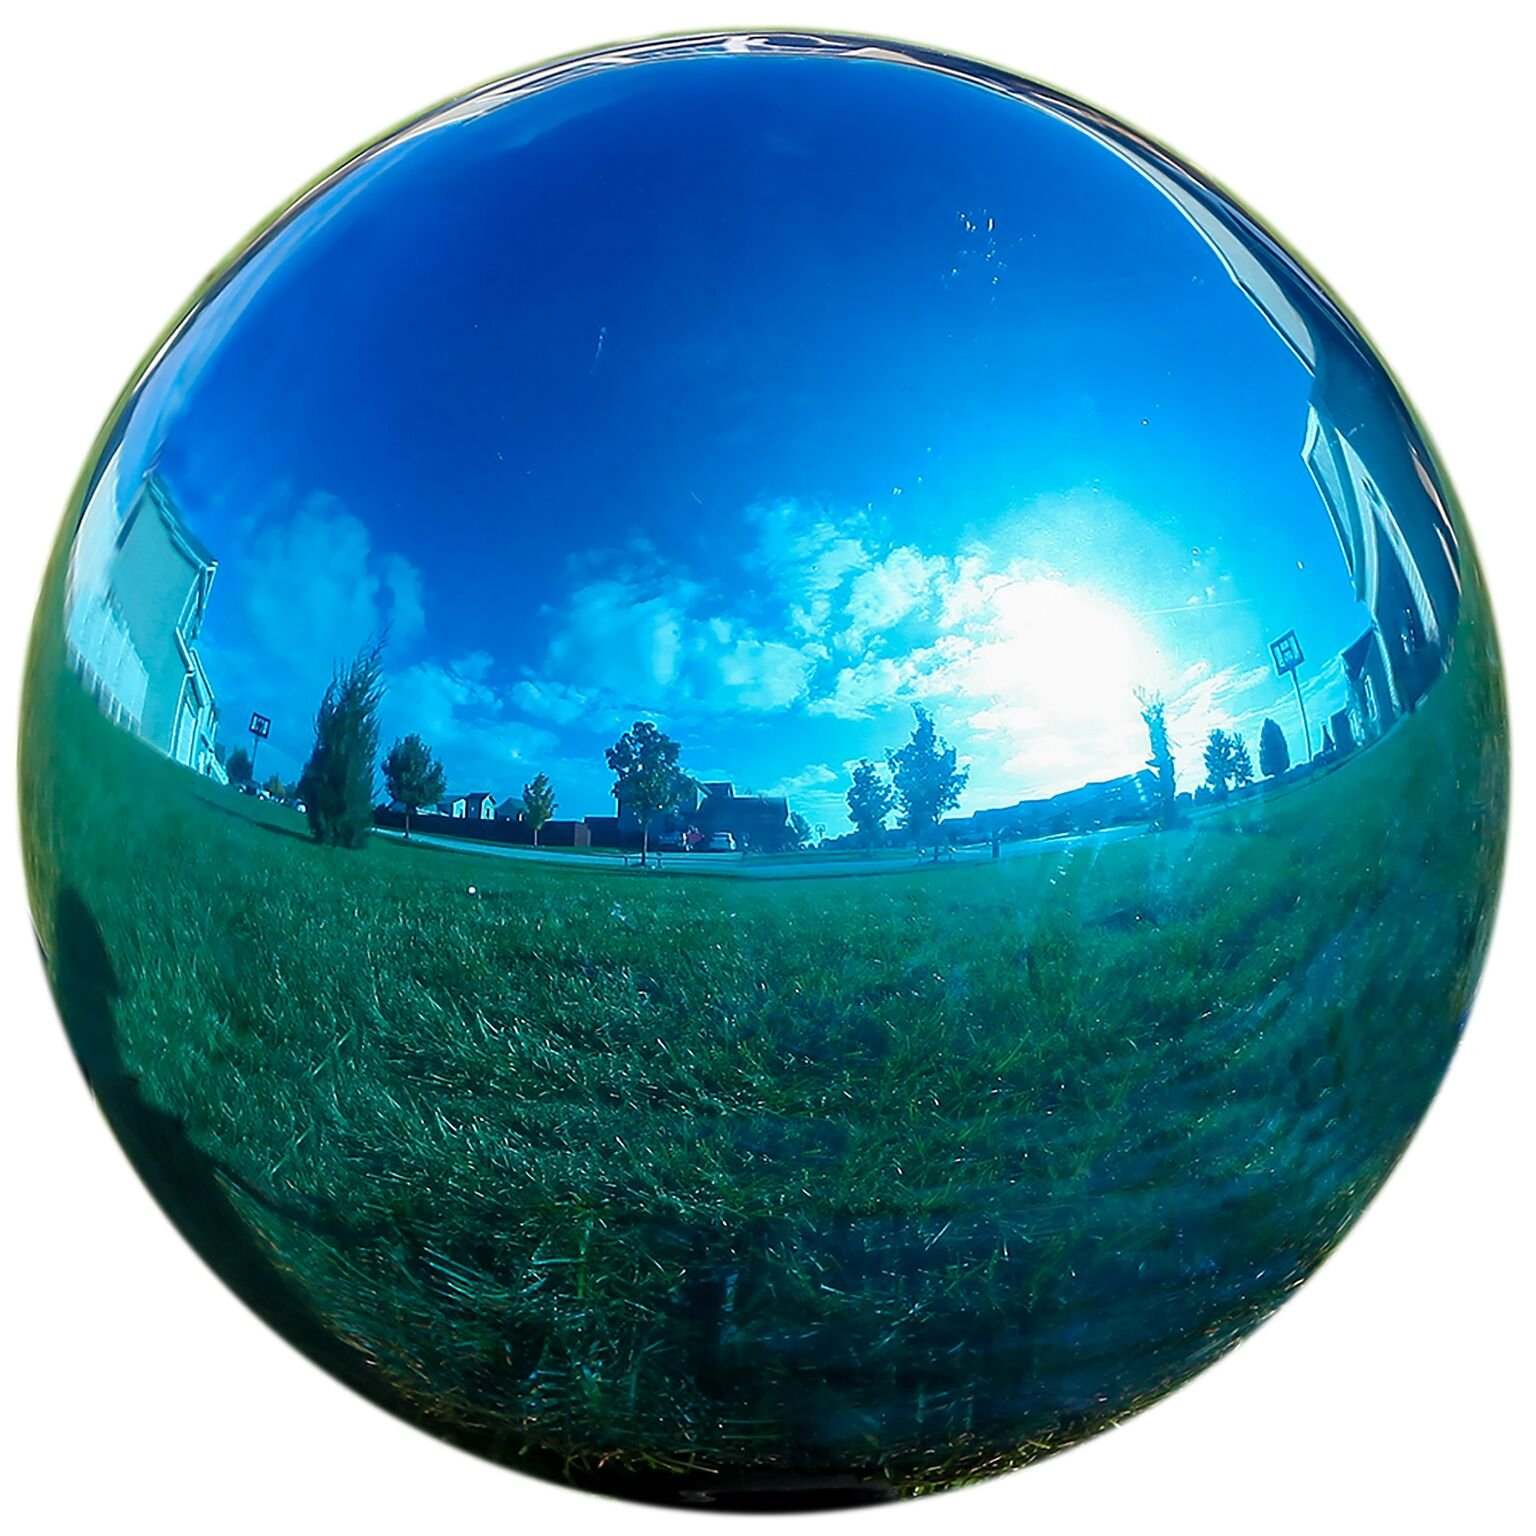 Lily's Home Glass Gazing Mirror Ball, Colorful and Shiny Addition to Any Garden or Home, Ideal As a Housewarming Gift, Sparkling Blue (12 Inches Diameter) by Lilyshome